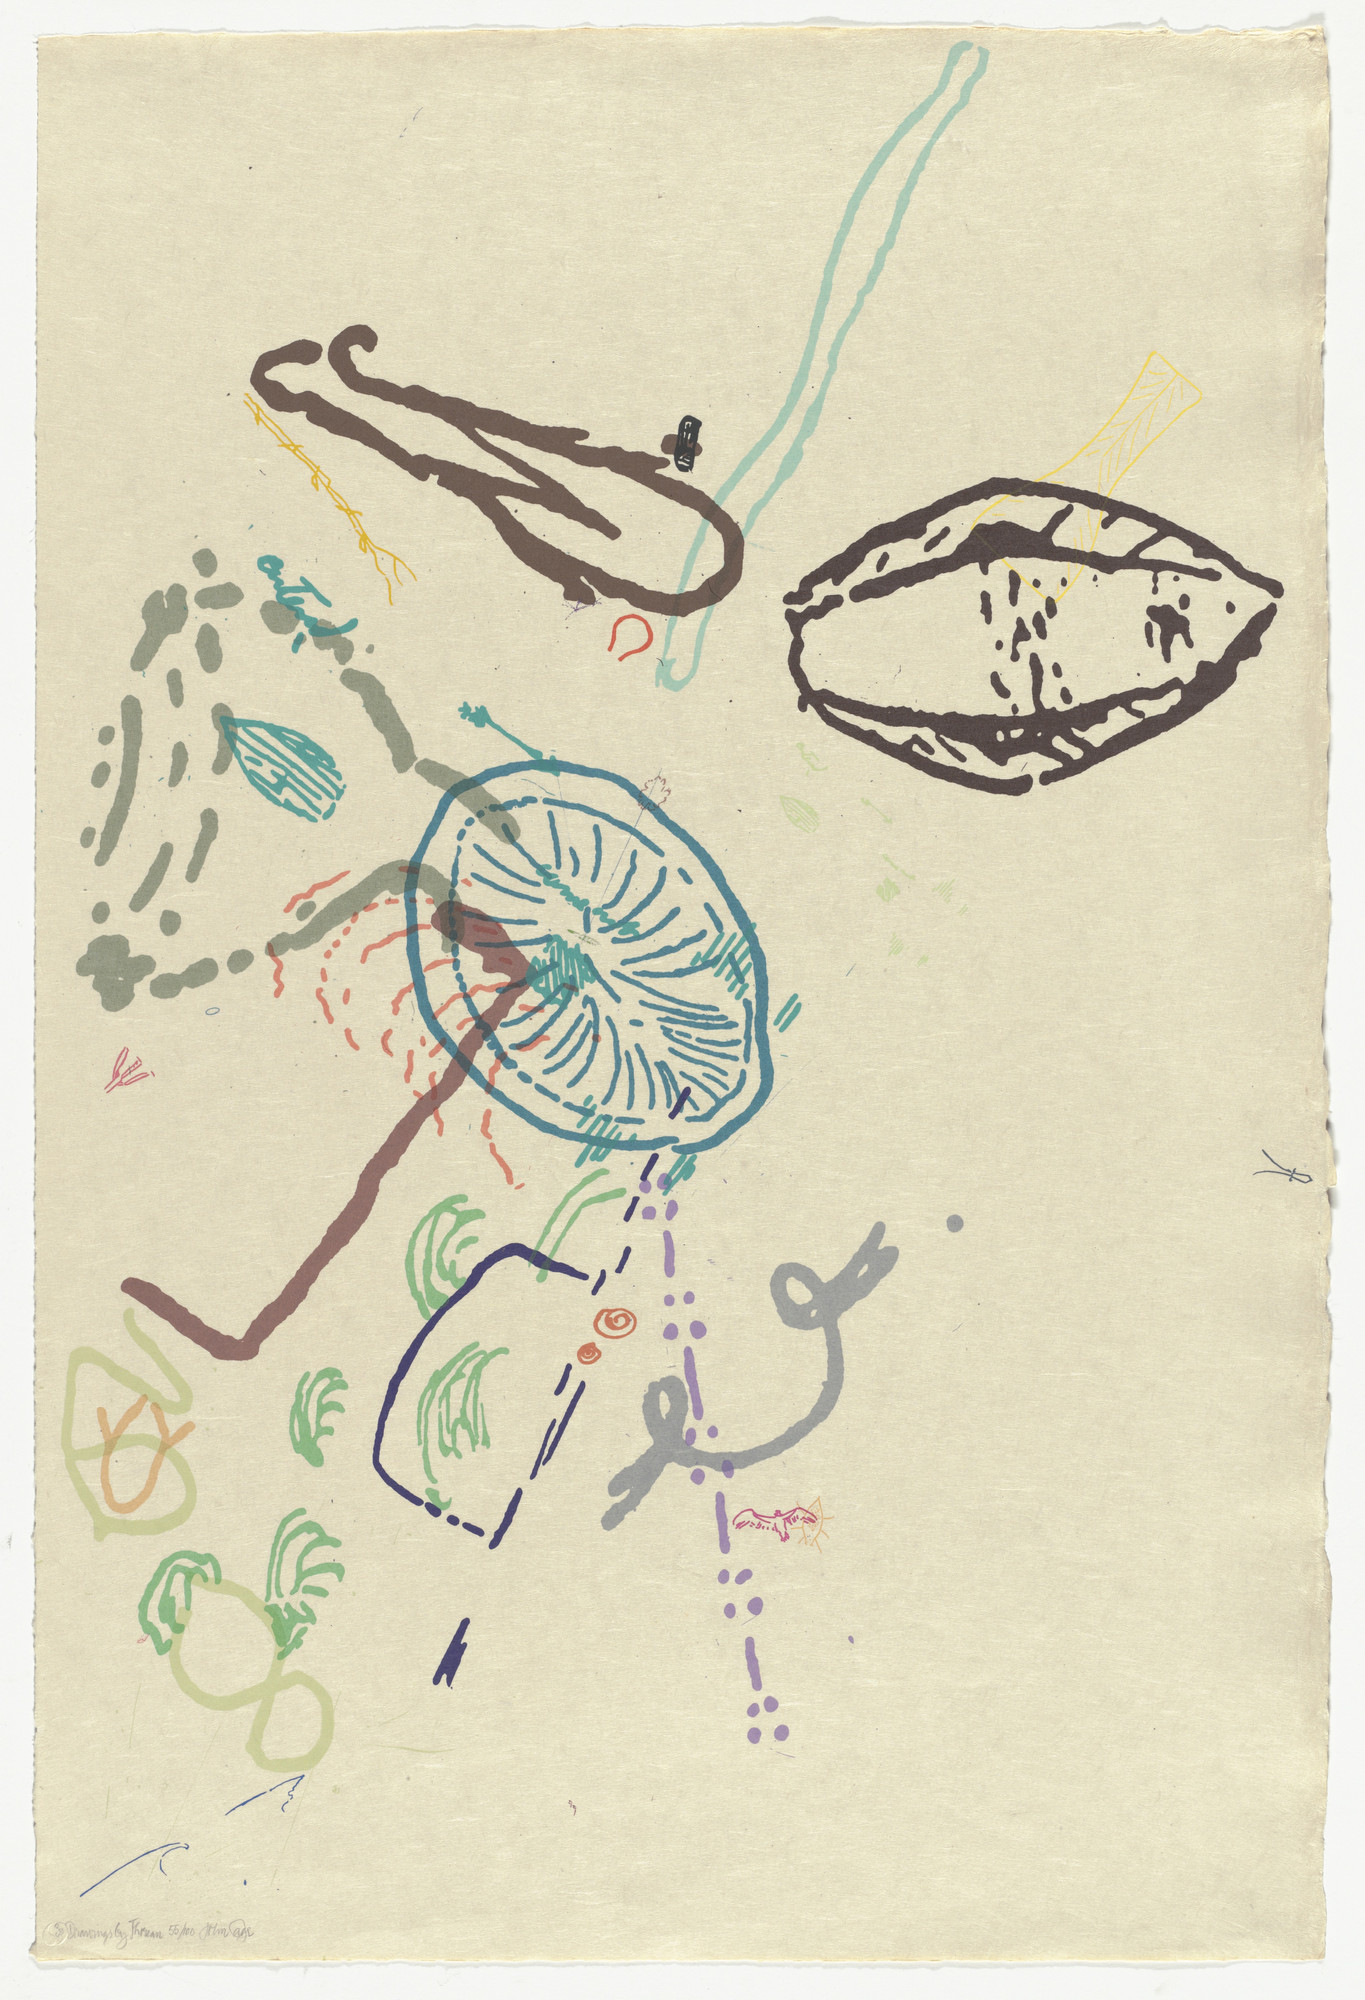 John Cage. 30 Drawings by Thoreau from Merce Cunningham Portfolio. 1974, published 1975